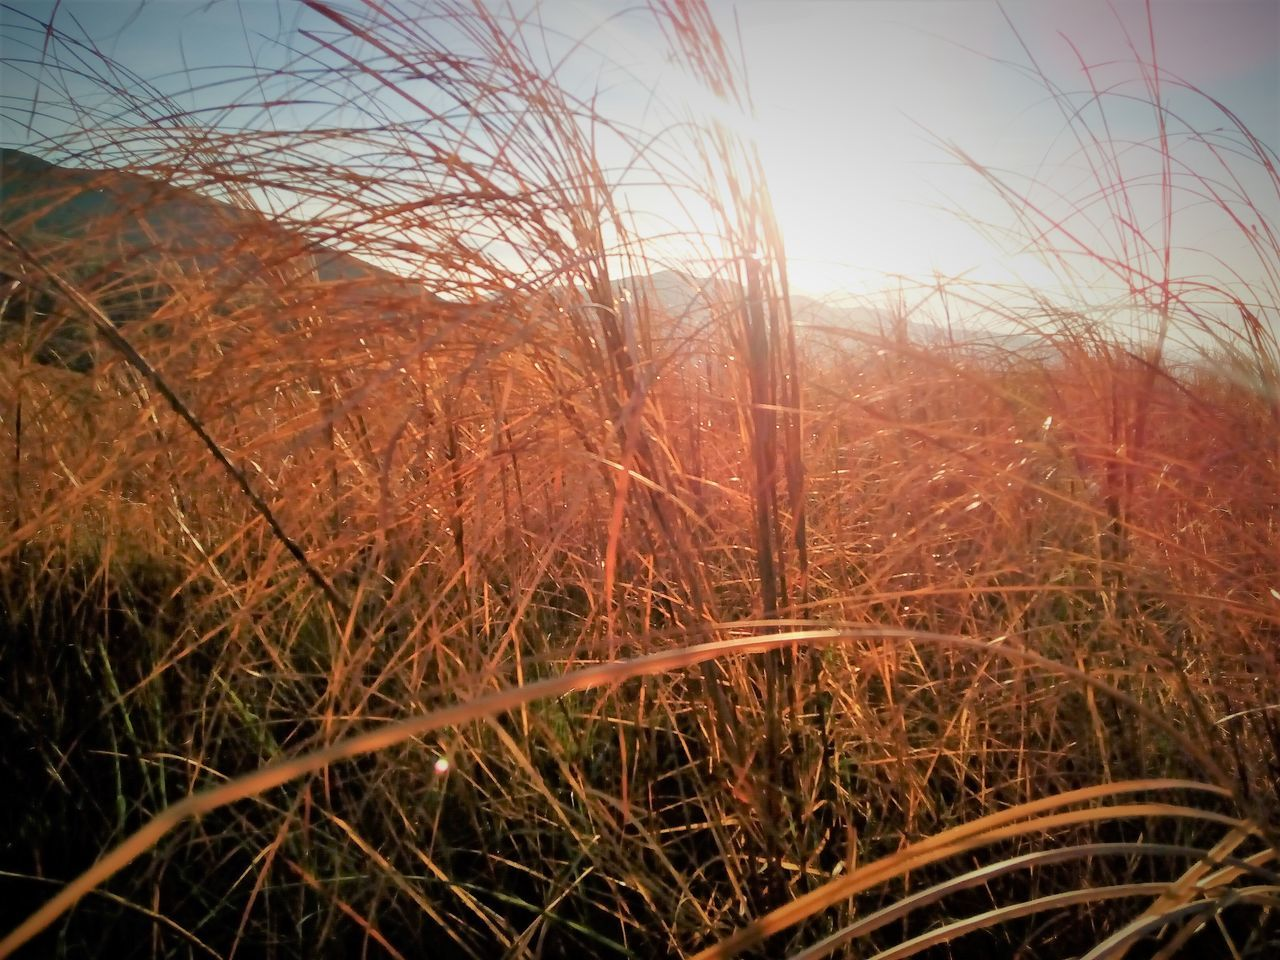 grass, no people, outdoors, nature, growth, tranquil scene, tranquility, day, plant, beauty in nature, scenics, tree, sky, close-up